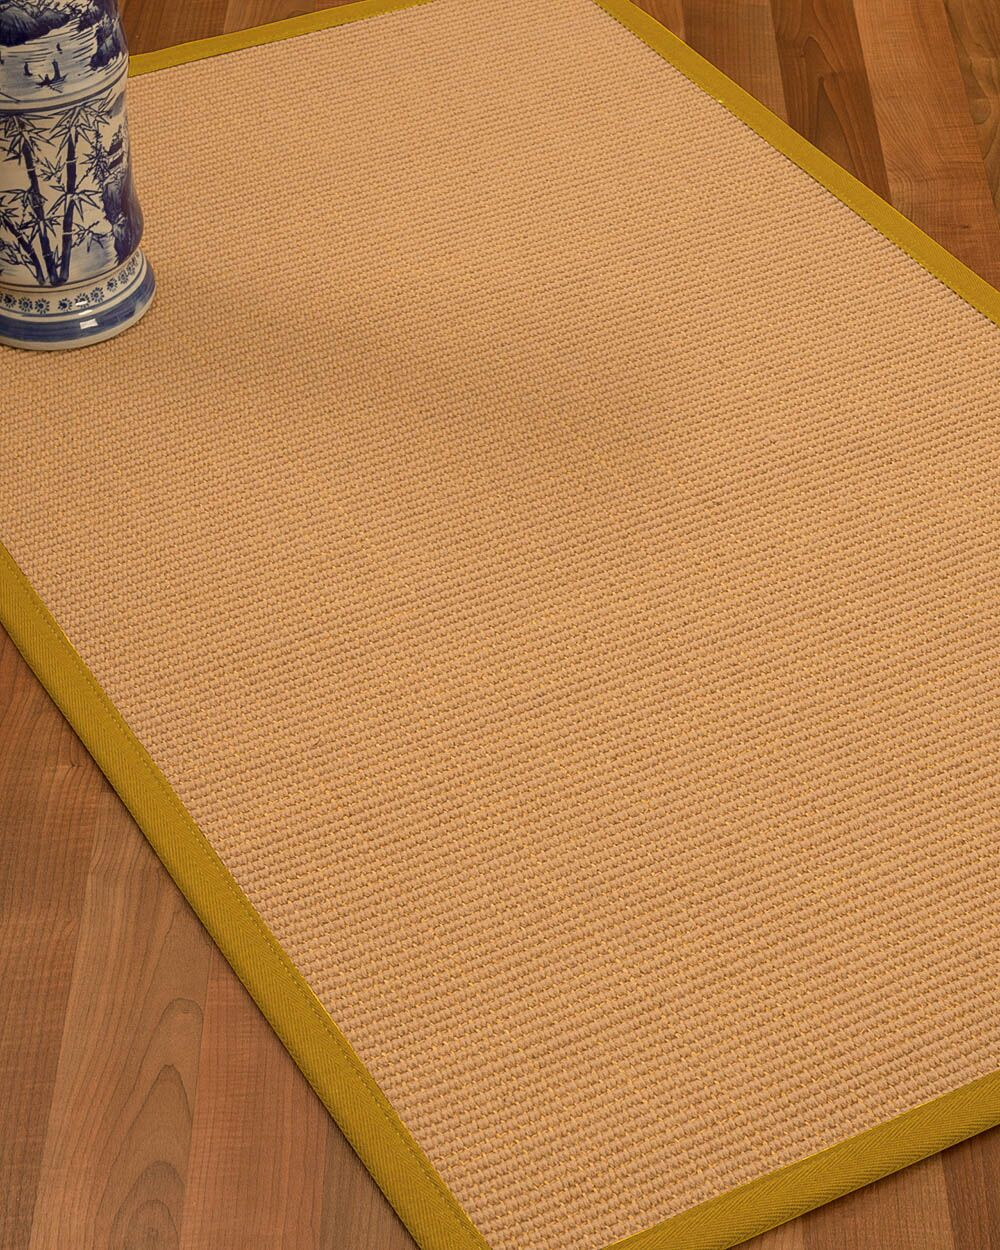 Lafayette Border Hand-Woven Wool Beige/Tan Area Rug Rug Size: Rectangle 6' x 9', Rug Pad Included: Yes